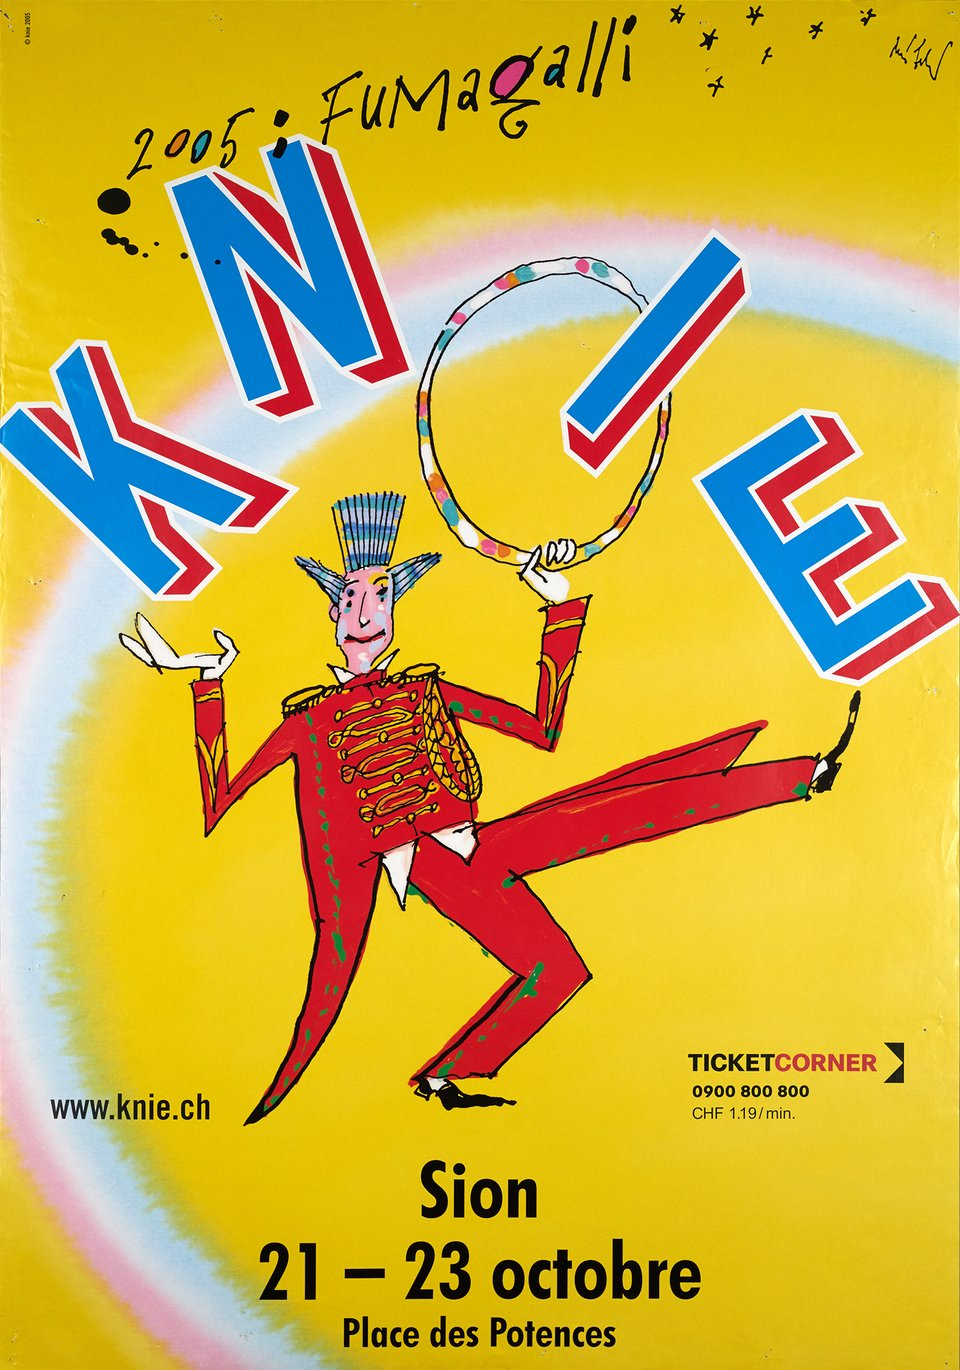 Knie – Vintage poster – ANONYME – 2005